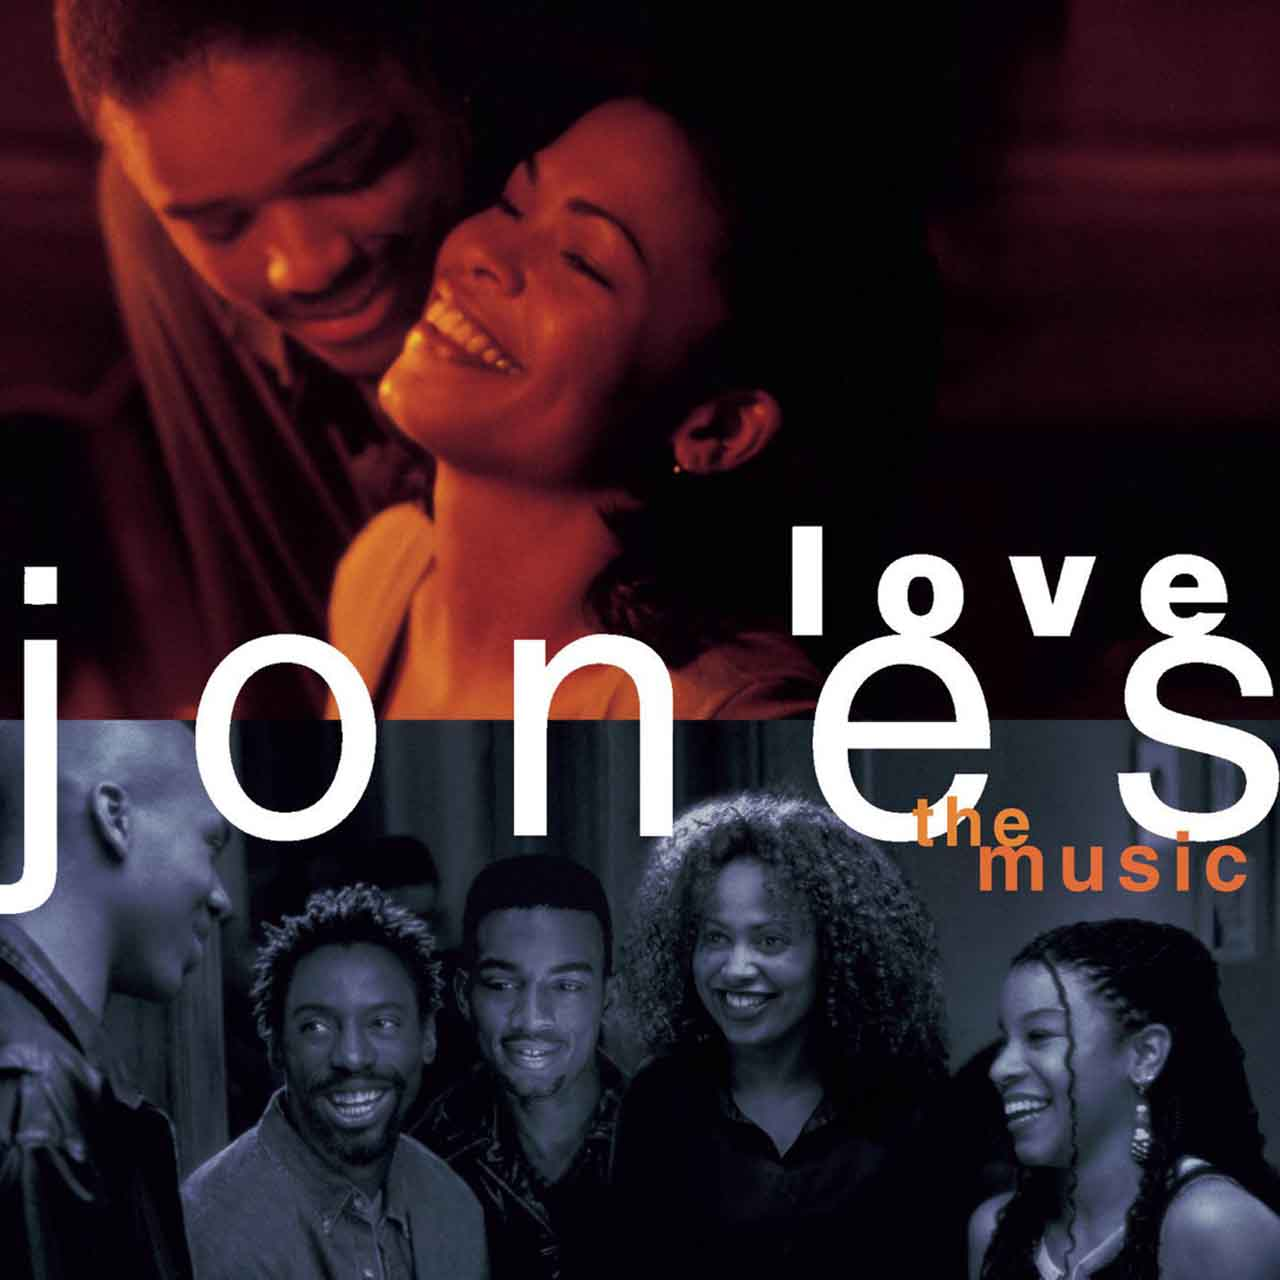 My Top 4 Soundtracks And How They Influence My Mood - When I'm In The Mood For Love: The Love Jones movie and soundtrack is considered to be iconic in regards to romance. The storyline follows the complicated connection between the main characters played by Nia Long (Nina Moseley) and Larenz Tate (Darius Lovehall). Nina and Darius know they like each other, but are trying to figure out if they love each other which is something that we can all relate to at some point in our lives. This soundtrack does a great job of representing the ups and downs of Nina and Darius's relationship through not only music but poetry as well. For example, one of my favorites on this soundtrack is Darius's poem to Nina, Brother to the Night (A Blues for Nina), where he basically tells her how much he wants her. The Sweetest Thing by Lauren Hill and Sumthin' Sumthin' by Maxwell additionally capture the way we feel when we're in a new love situation. I love that this soundtrack beautifully reminds me of what it feels like to fall in love every time I listen to it. This album has and always will be relevant for me whether I'm happy or sad in love.